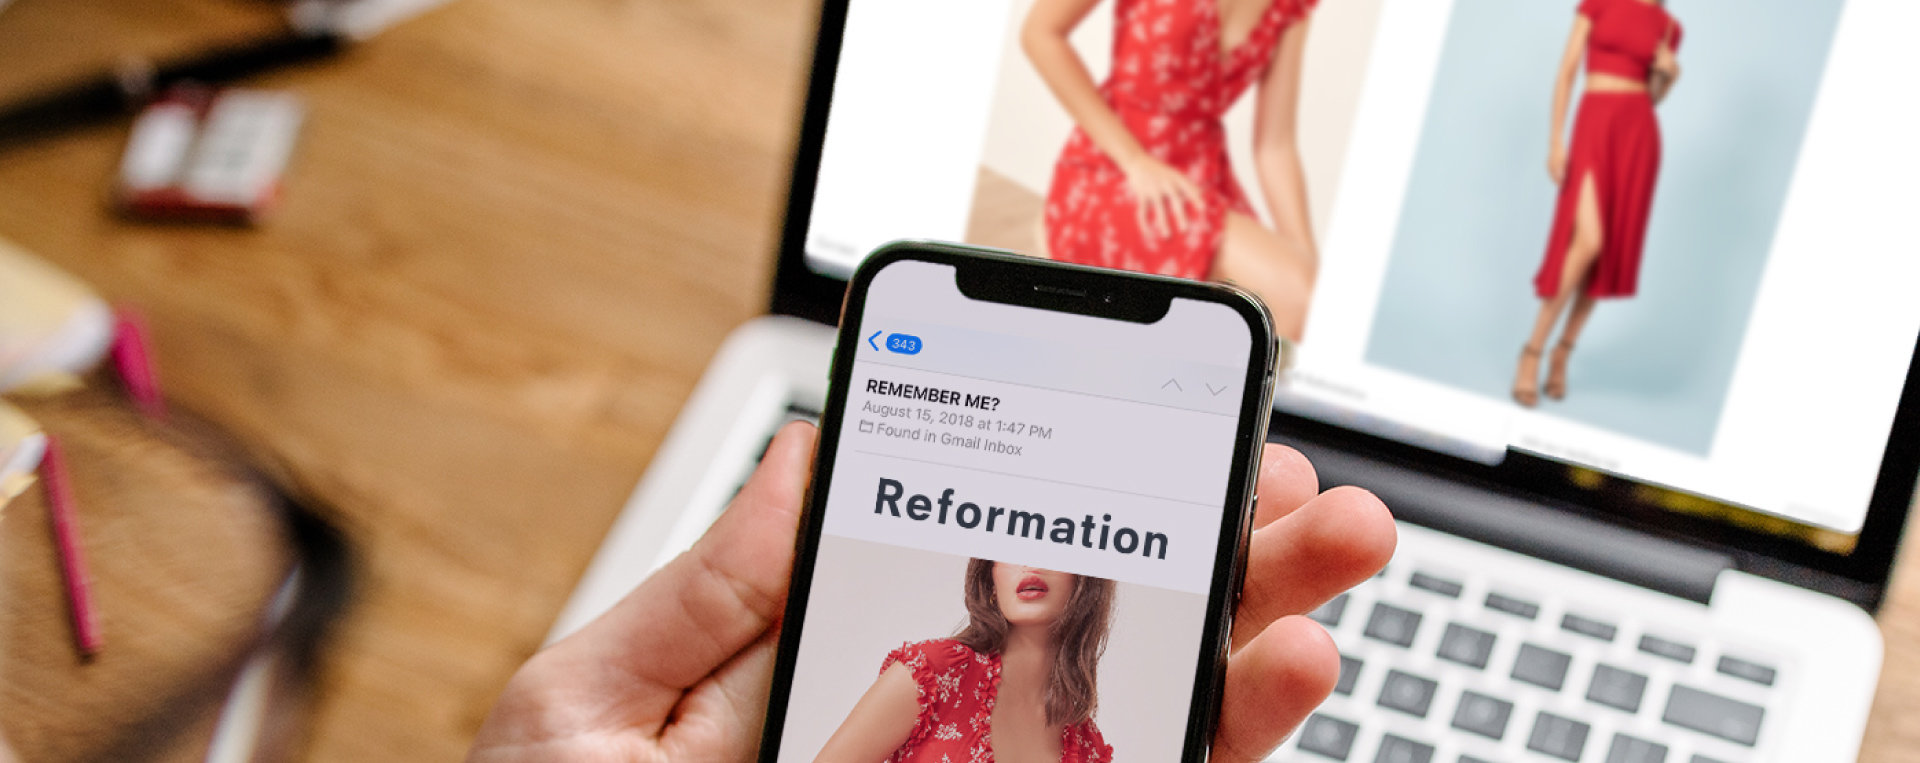 Reformation Desktop and Mobile Touchpoints